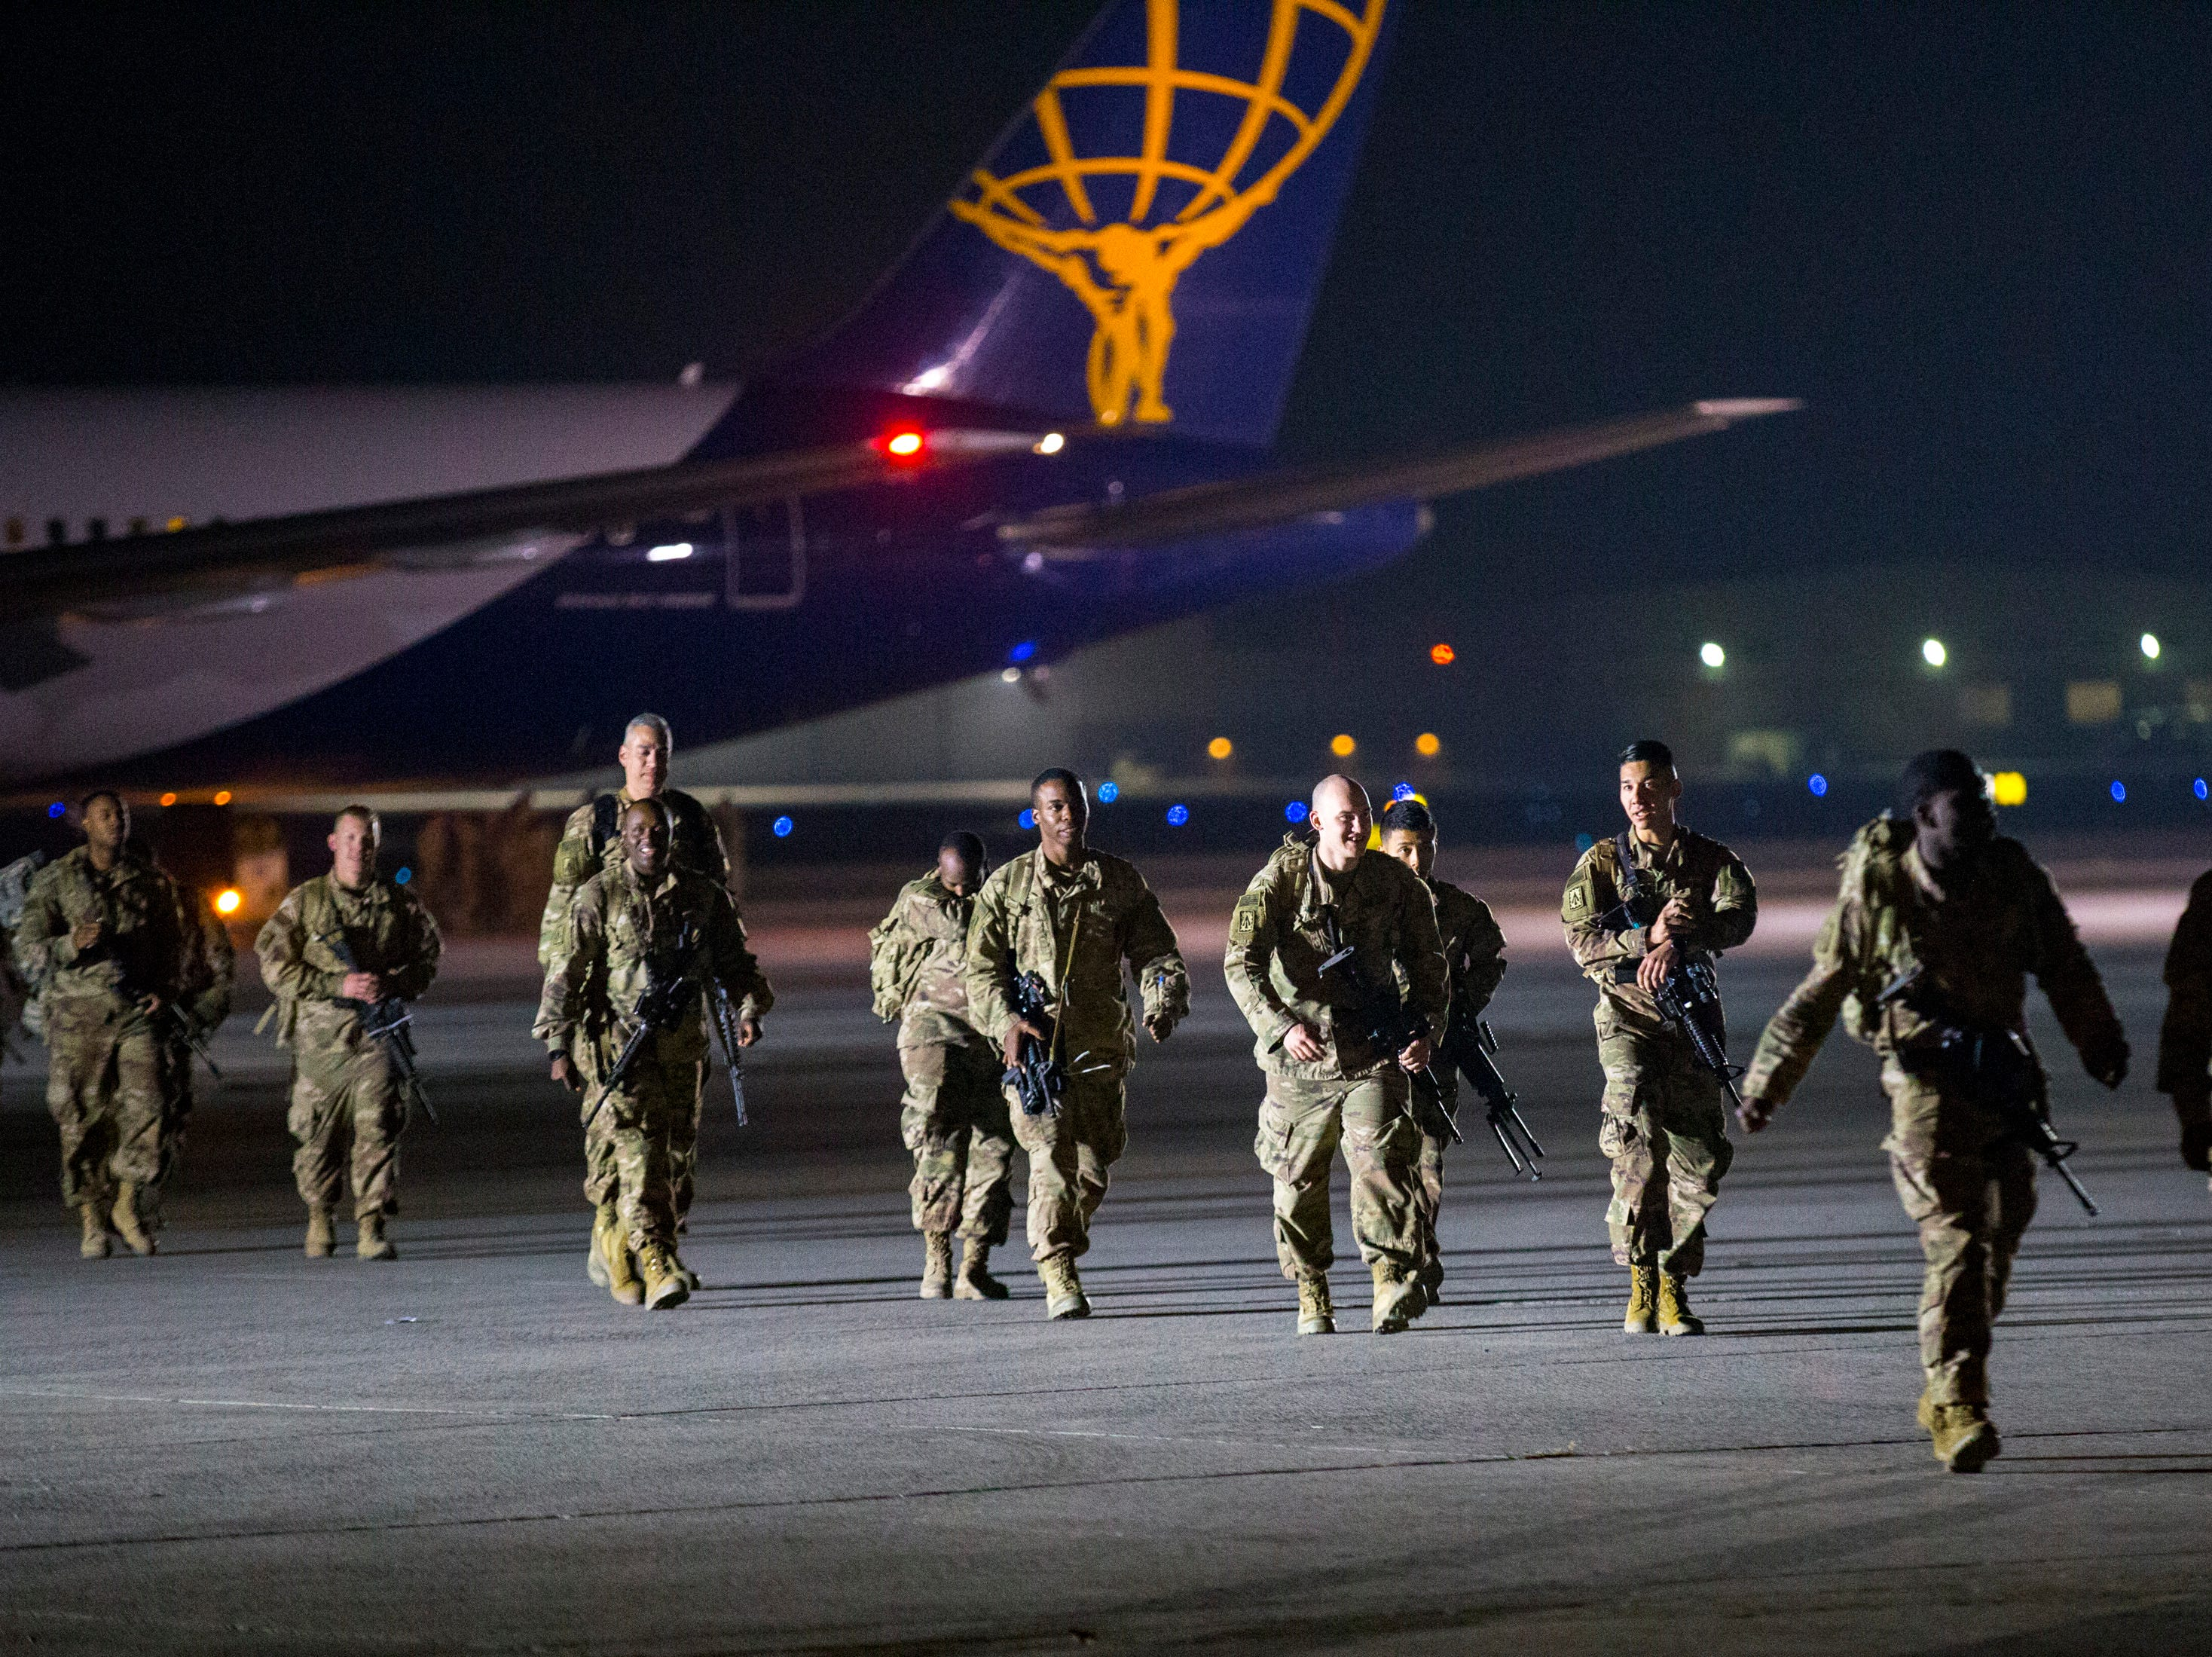 Members of the 2nd Battalion, 44th Air Defense Artillery Regiment and 101st Airborne Division arrives at Fort Campbell in the early hours of Monday, Nov. 19, 2018. The soldiers were returning from a 9-month deployment in Afghanistan.